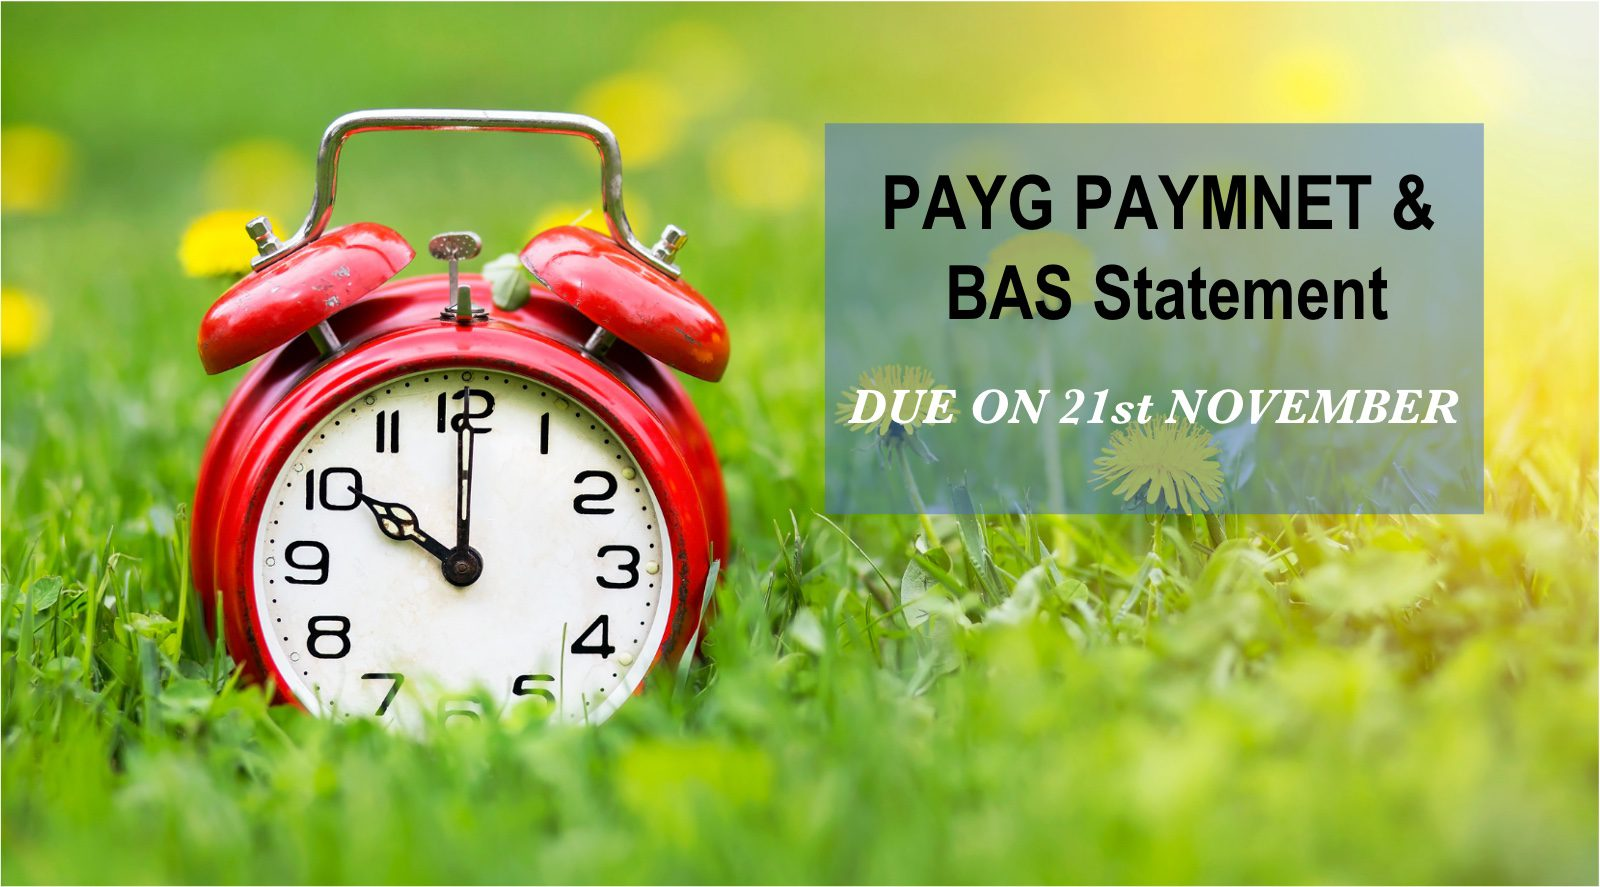 Your PAYG Withholding & BAS Statements are due on 21st November